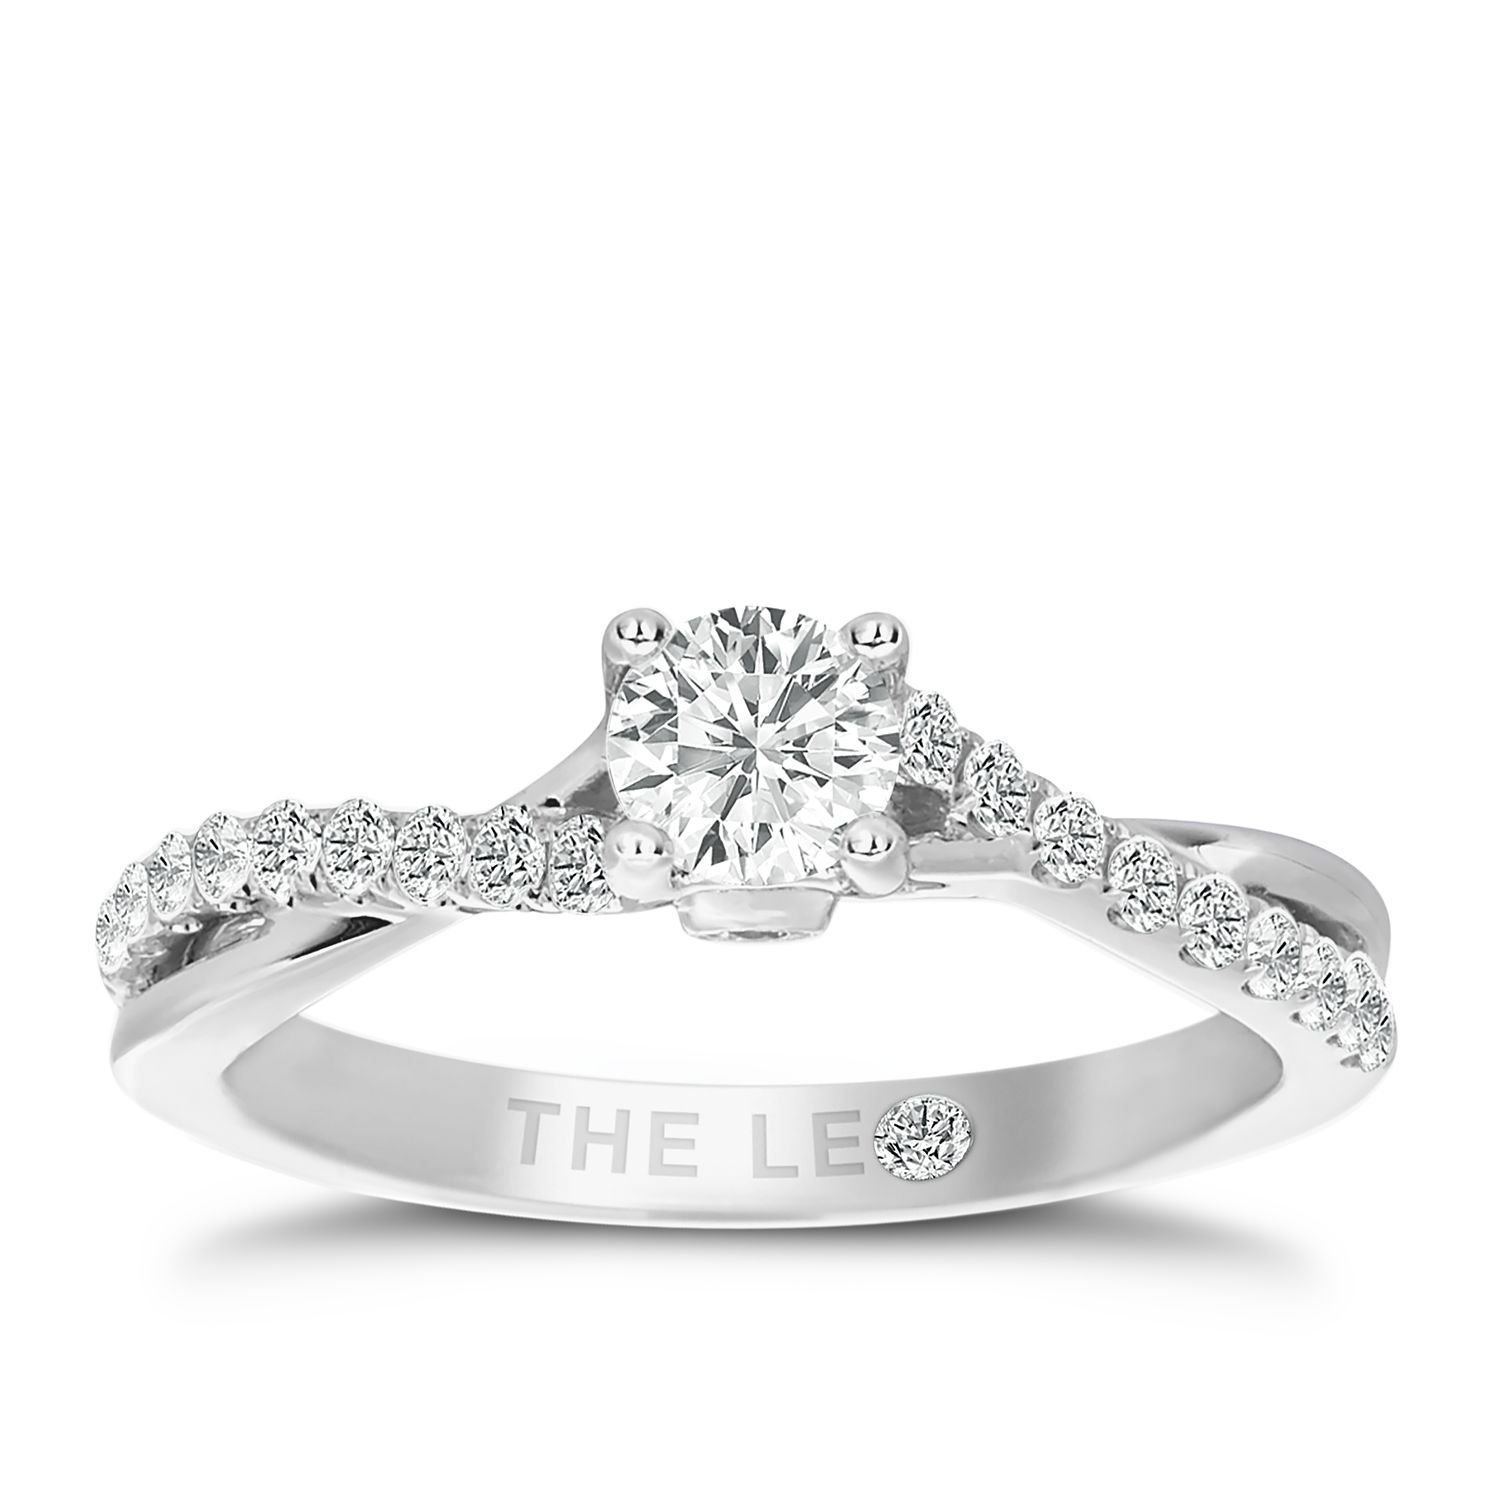 Leo Diamond 18ct White Gold 0.66ct Total Diamond Ring - Product number 3098761